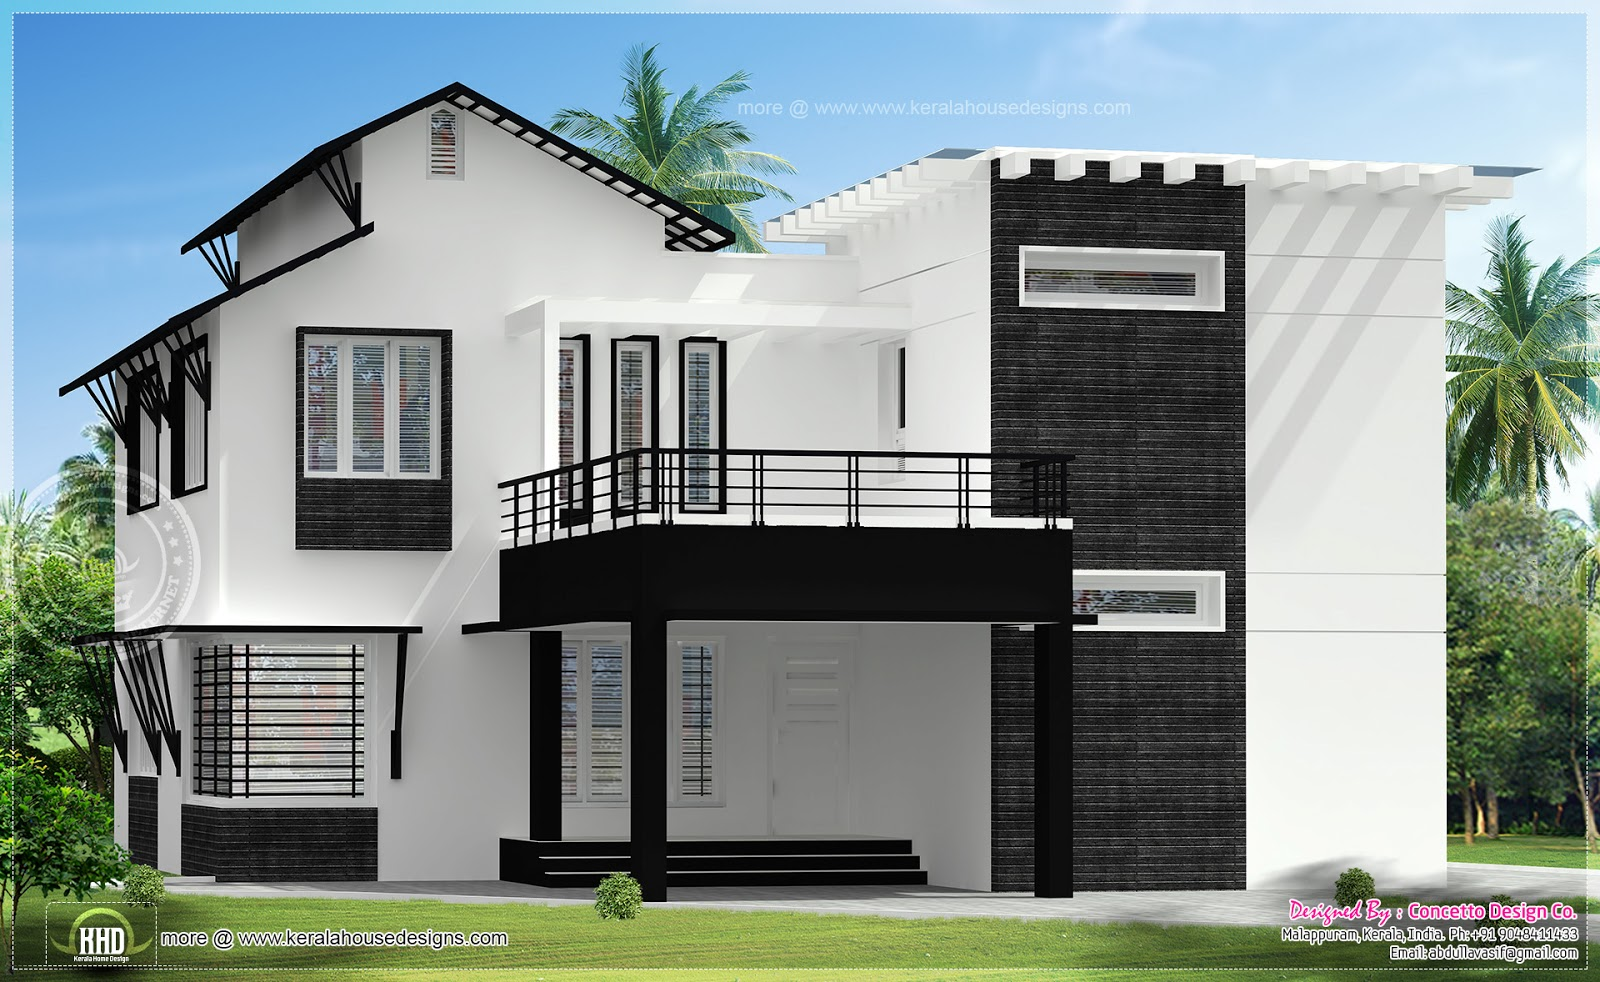 5 different house exteriors by concetto design kerala for Home plans and designs